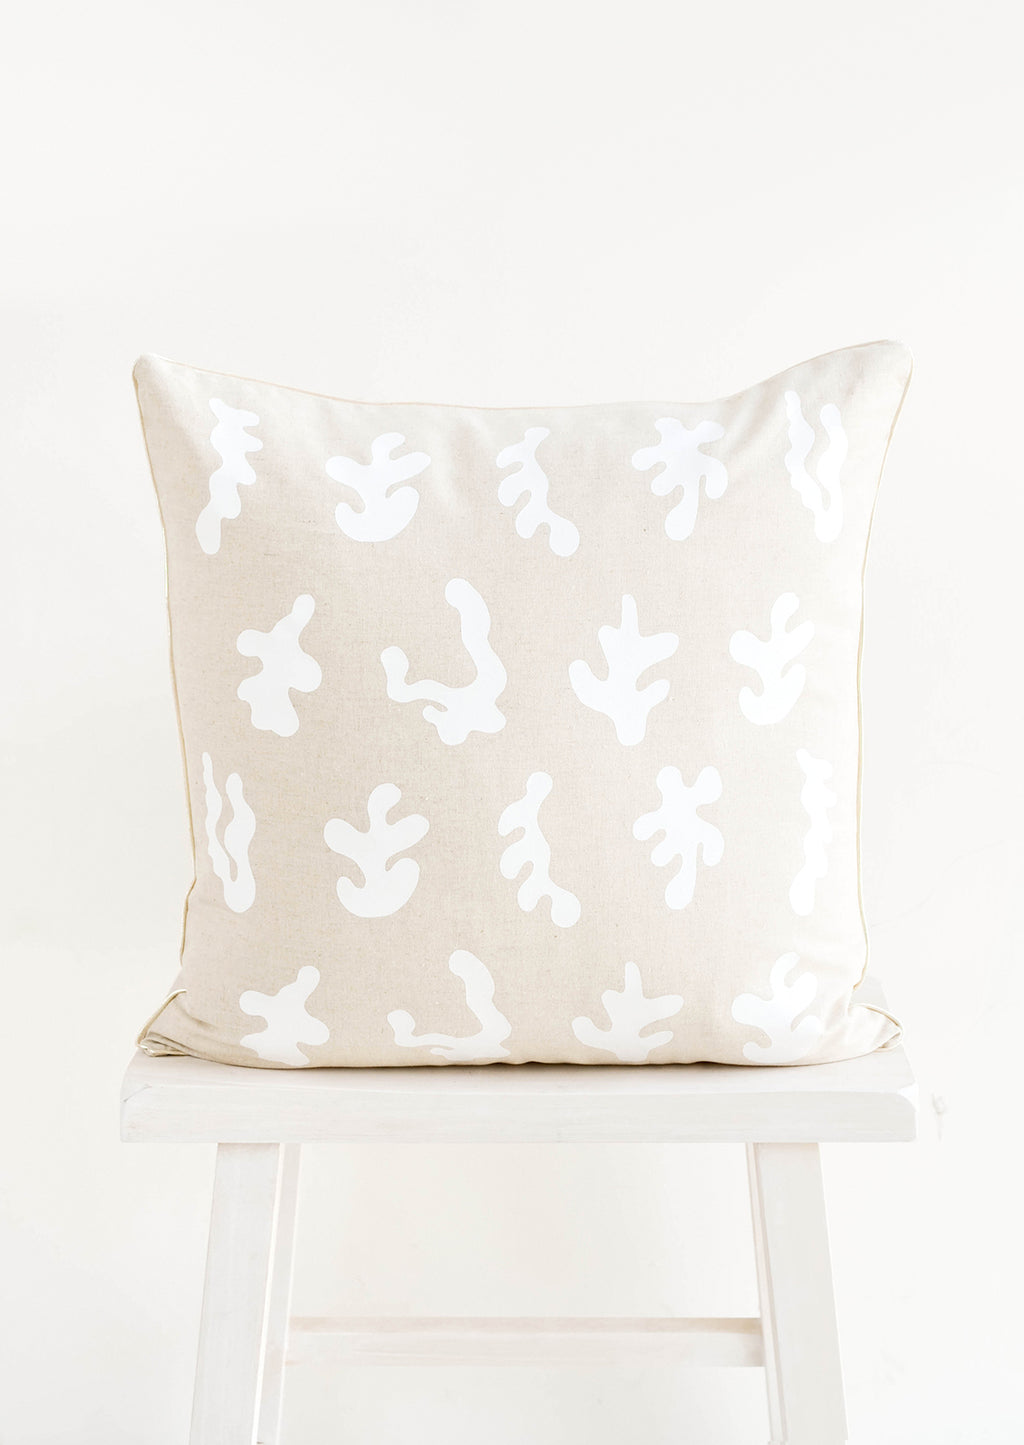 2: Square throw pillow in natural linen color with white, screen printed seaweed shapes